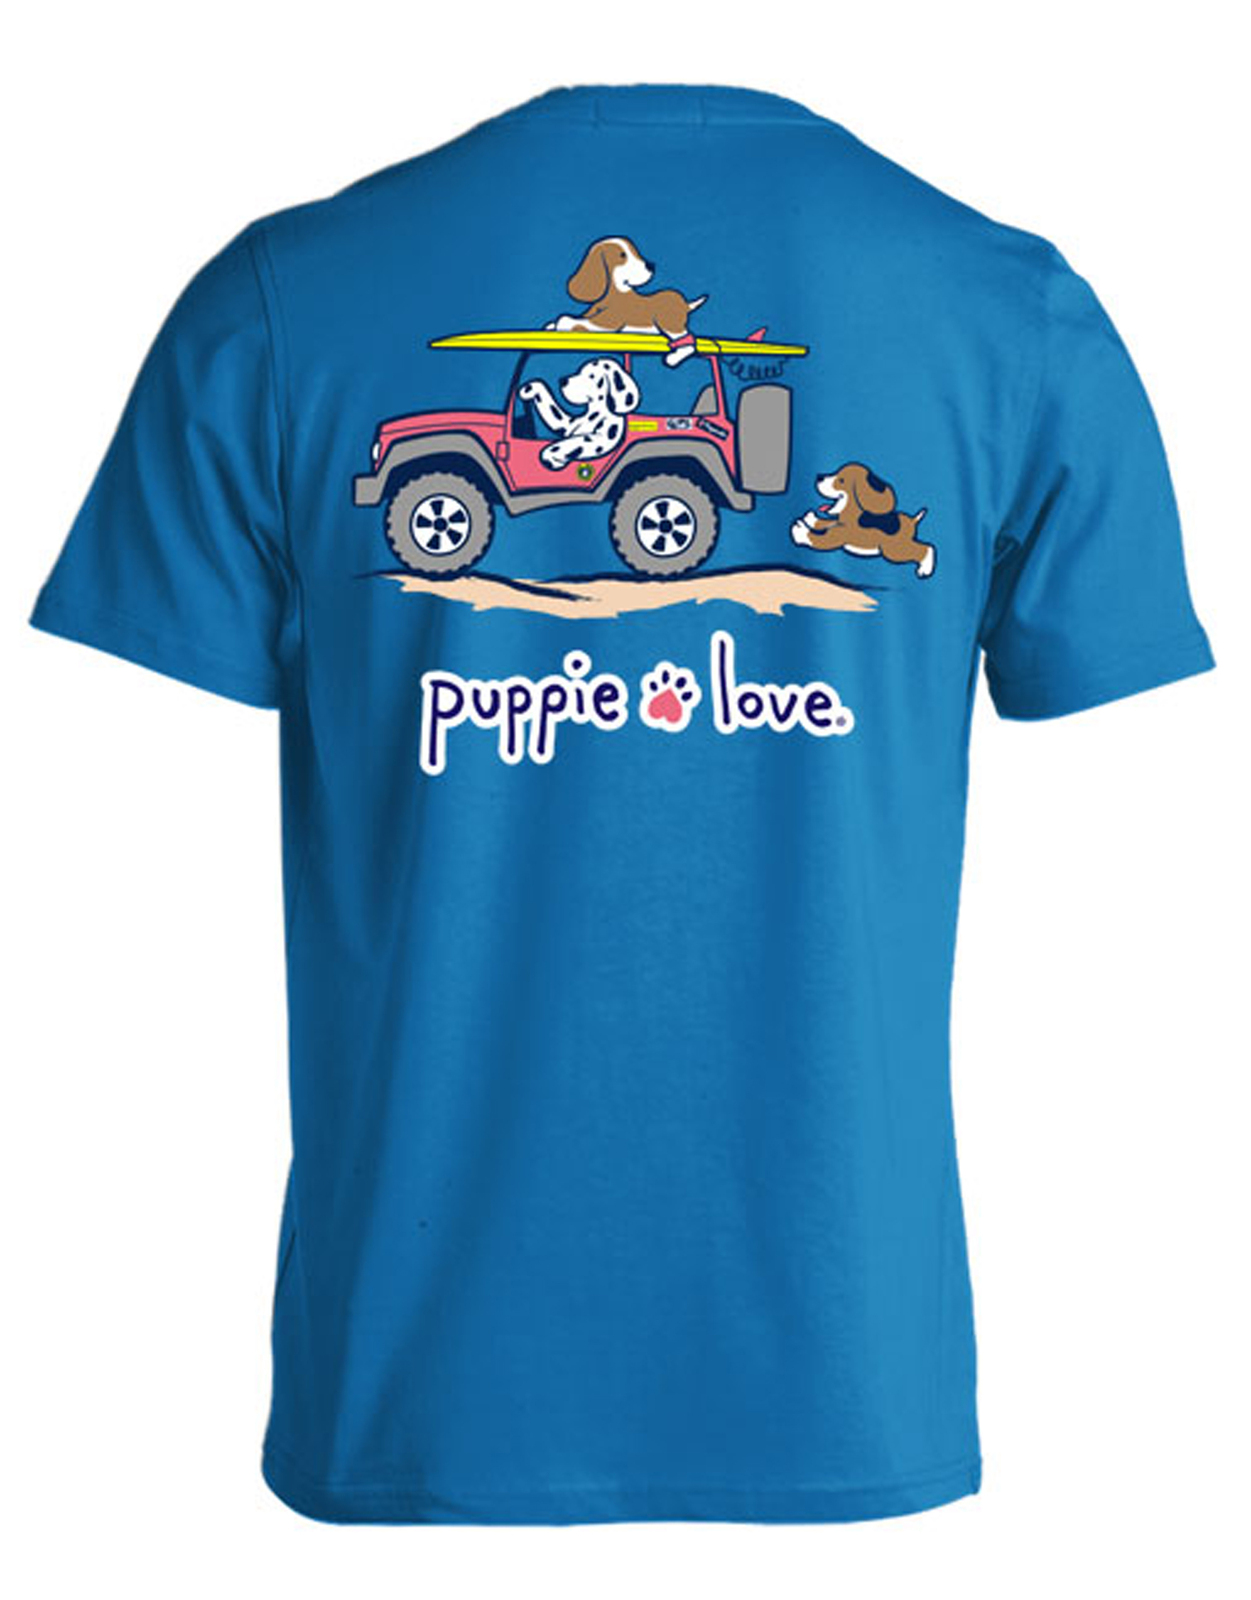 Puppie Love Rescue Dog Adult Unisex Short Sleeve Graphic T-Shirt, Dunes Pup